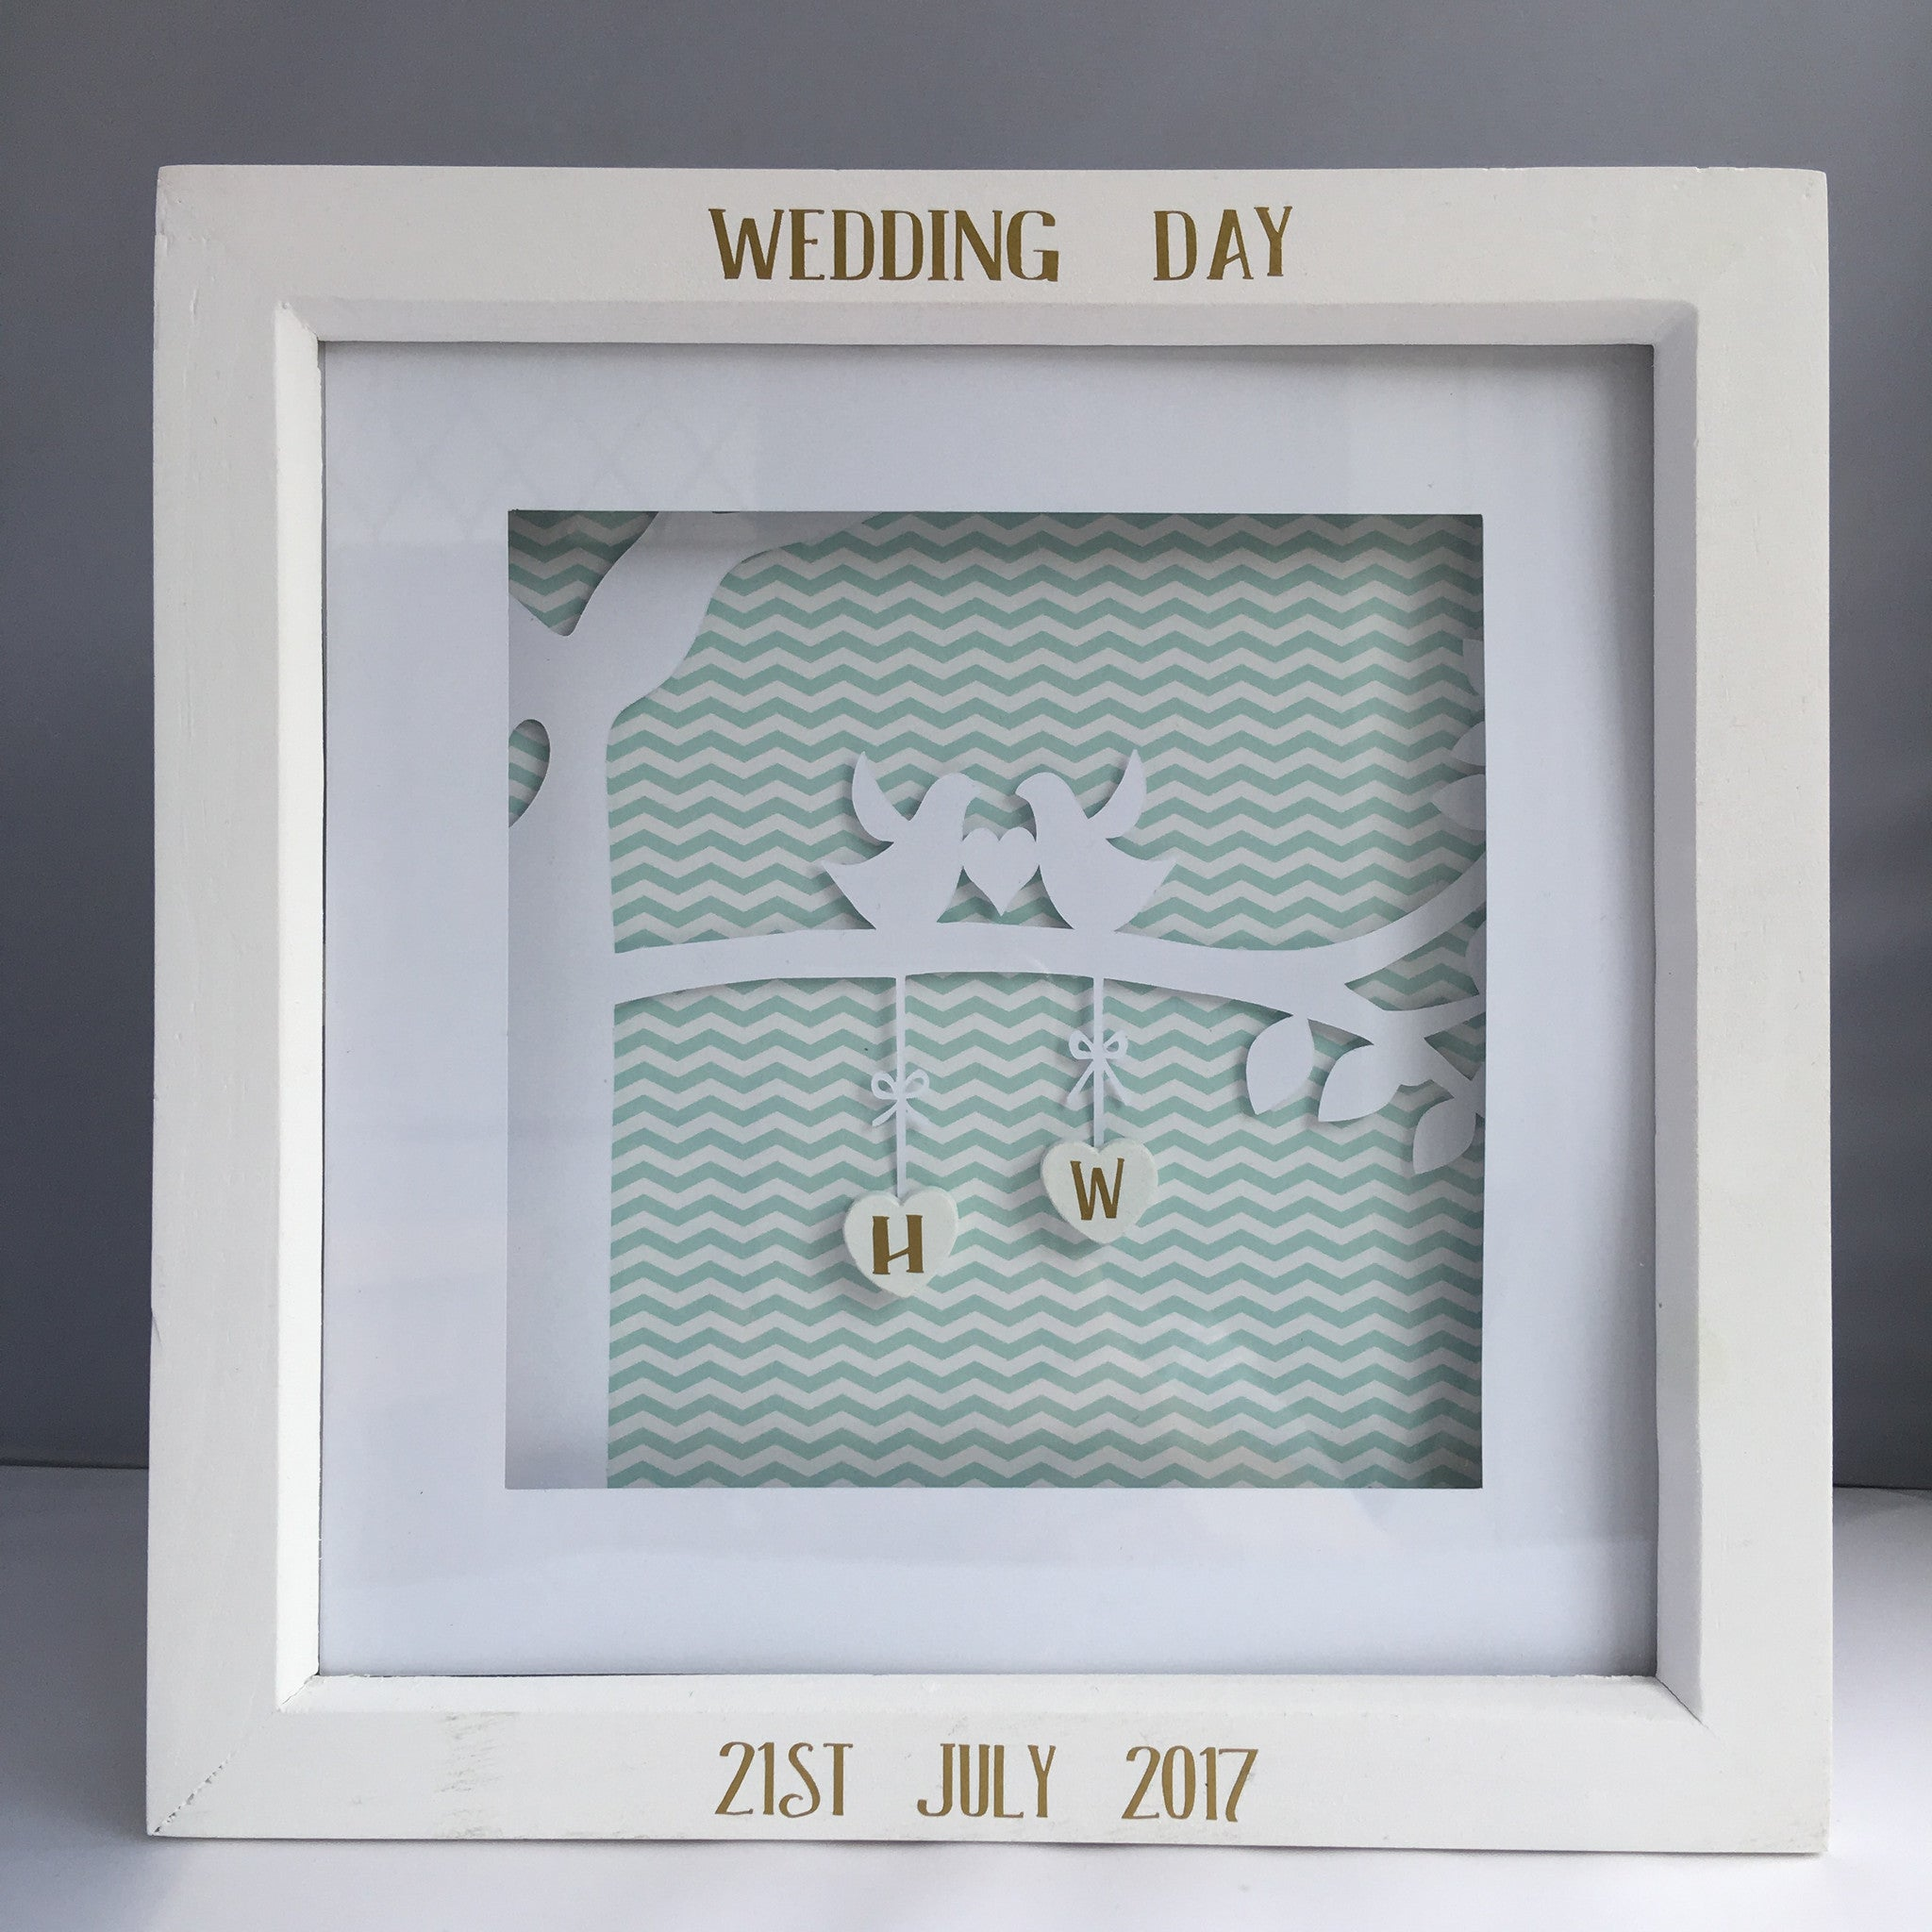 Personalised Wedding Box Frames – Unique Personal Gifts